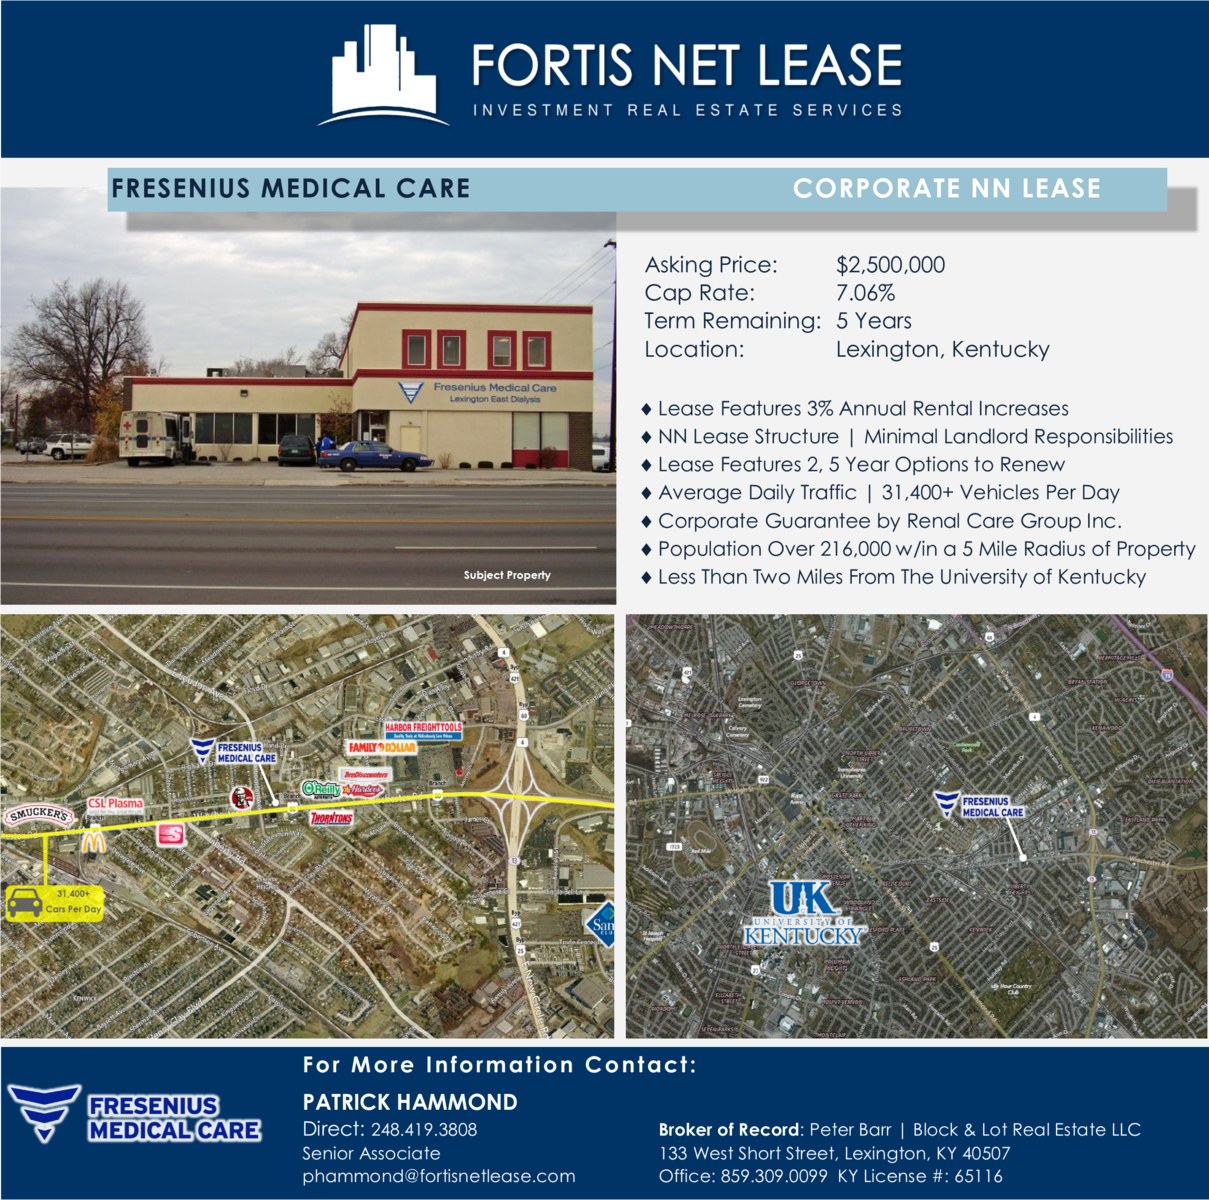 Fortis | Just Listed | Fresenius Medical Care | Lexington, KY | 3